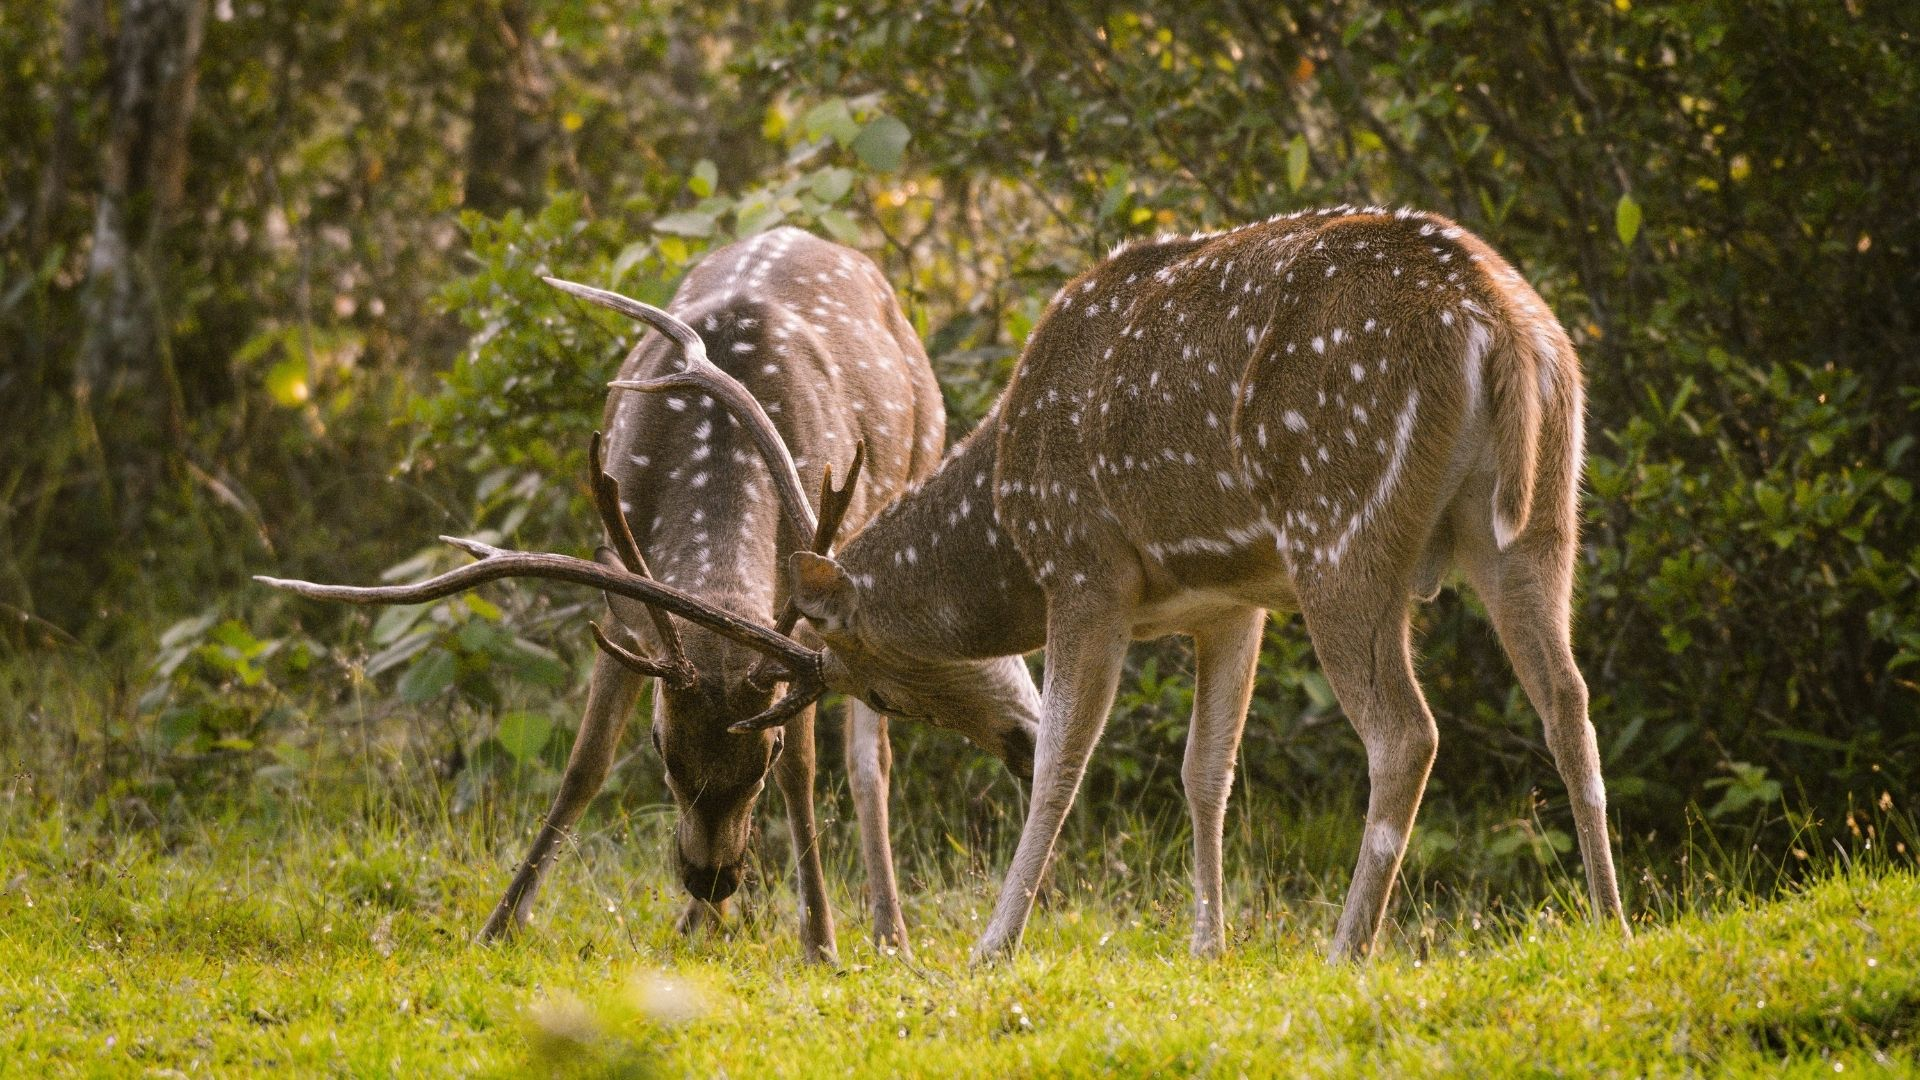 Deer Fight Spotted in Wilpattu National Park